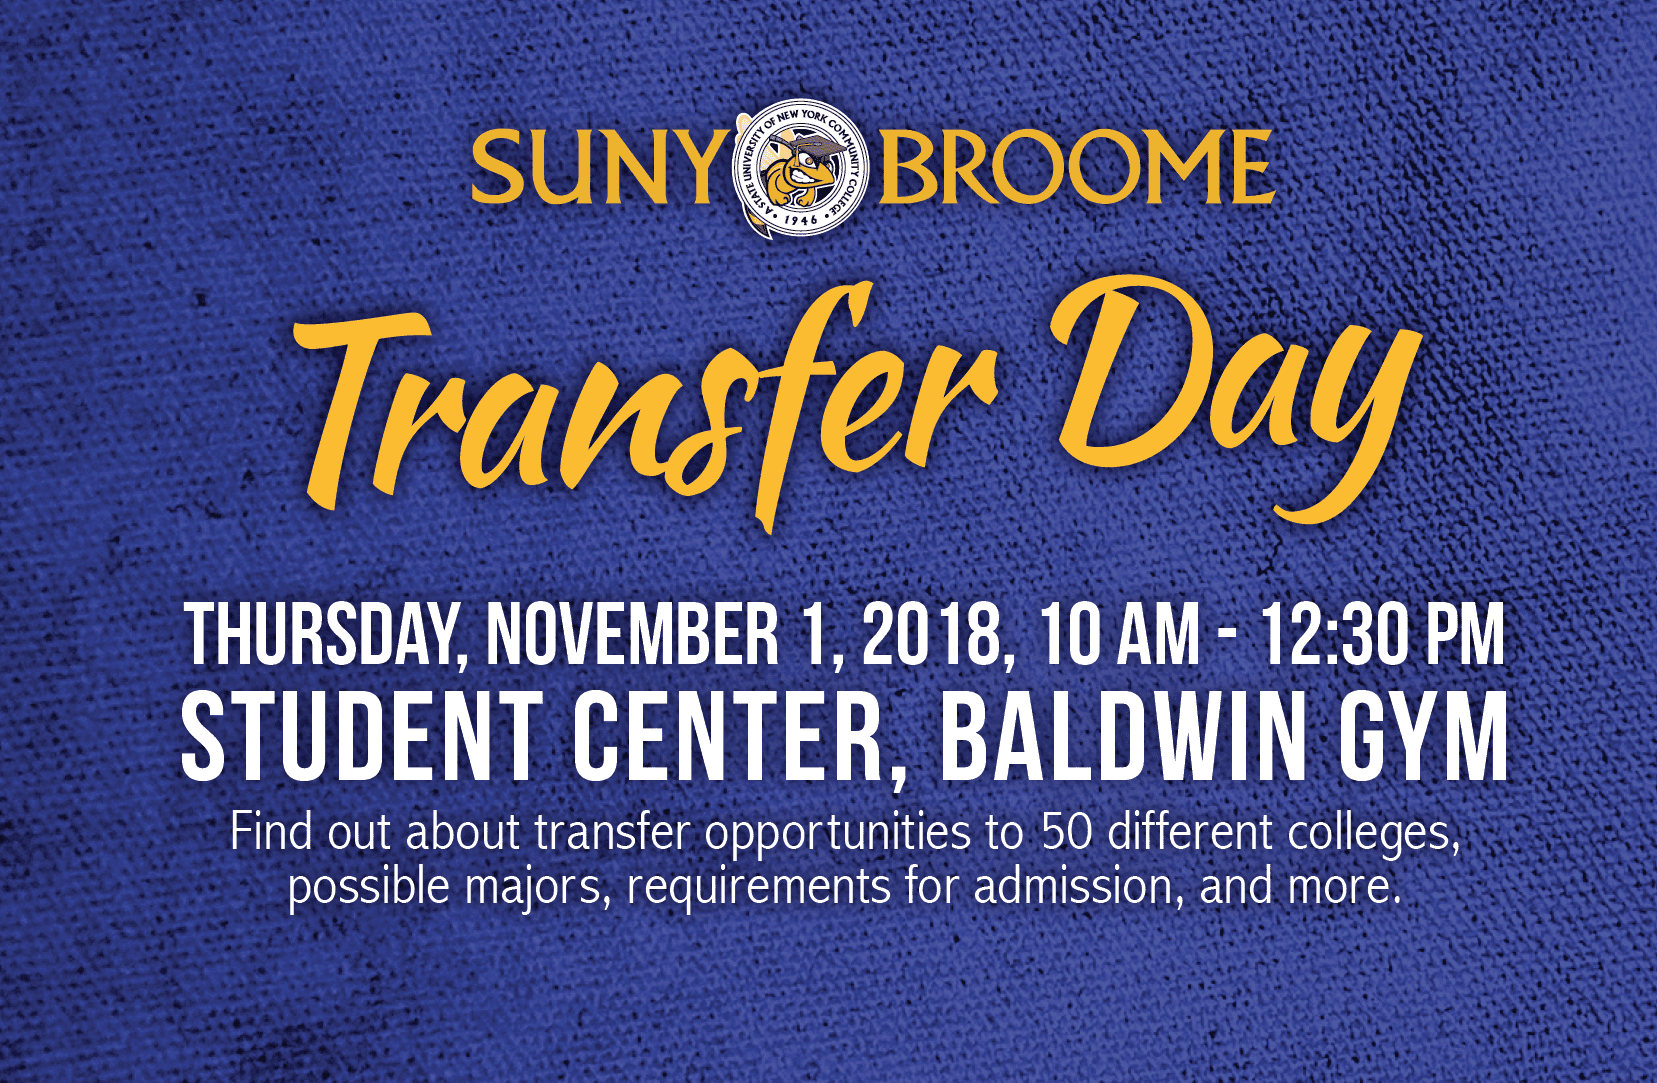 Don't forget: Nov. 1 is Transfer Day in the Baldwin Gym!